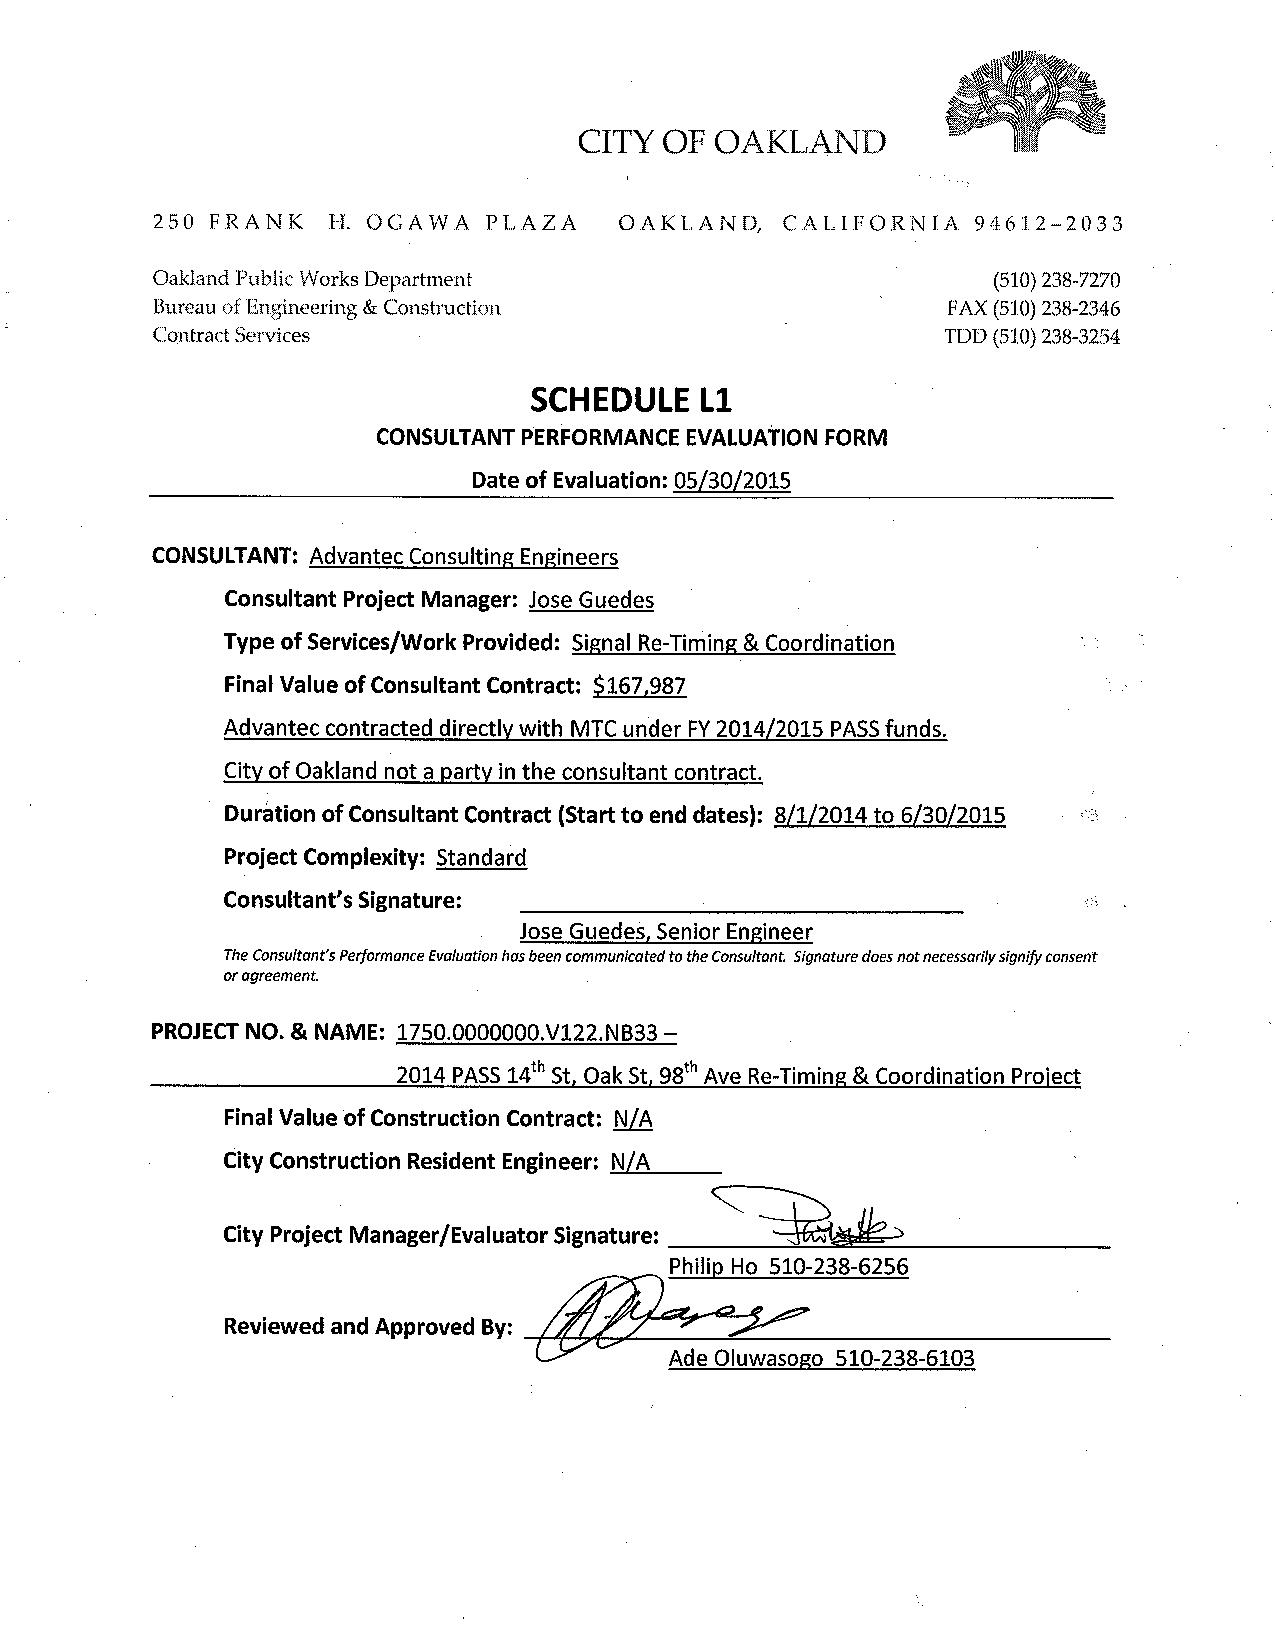 City of Oakland Evaluation and Letter-page-001